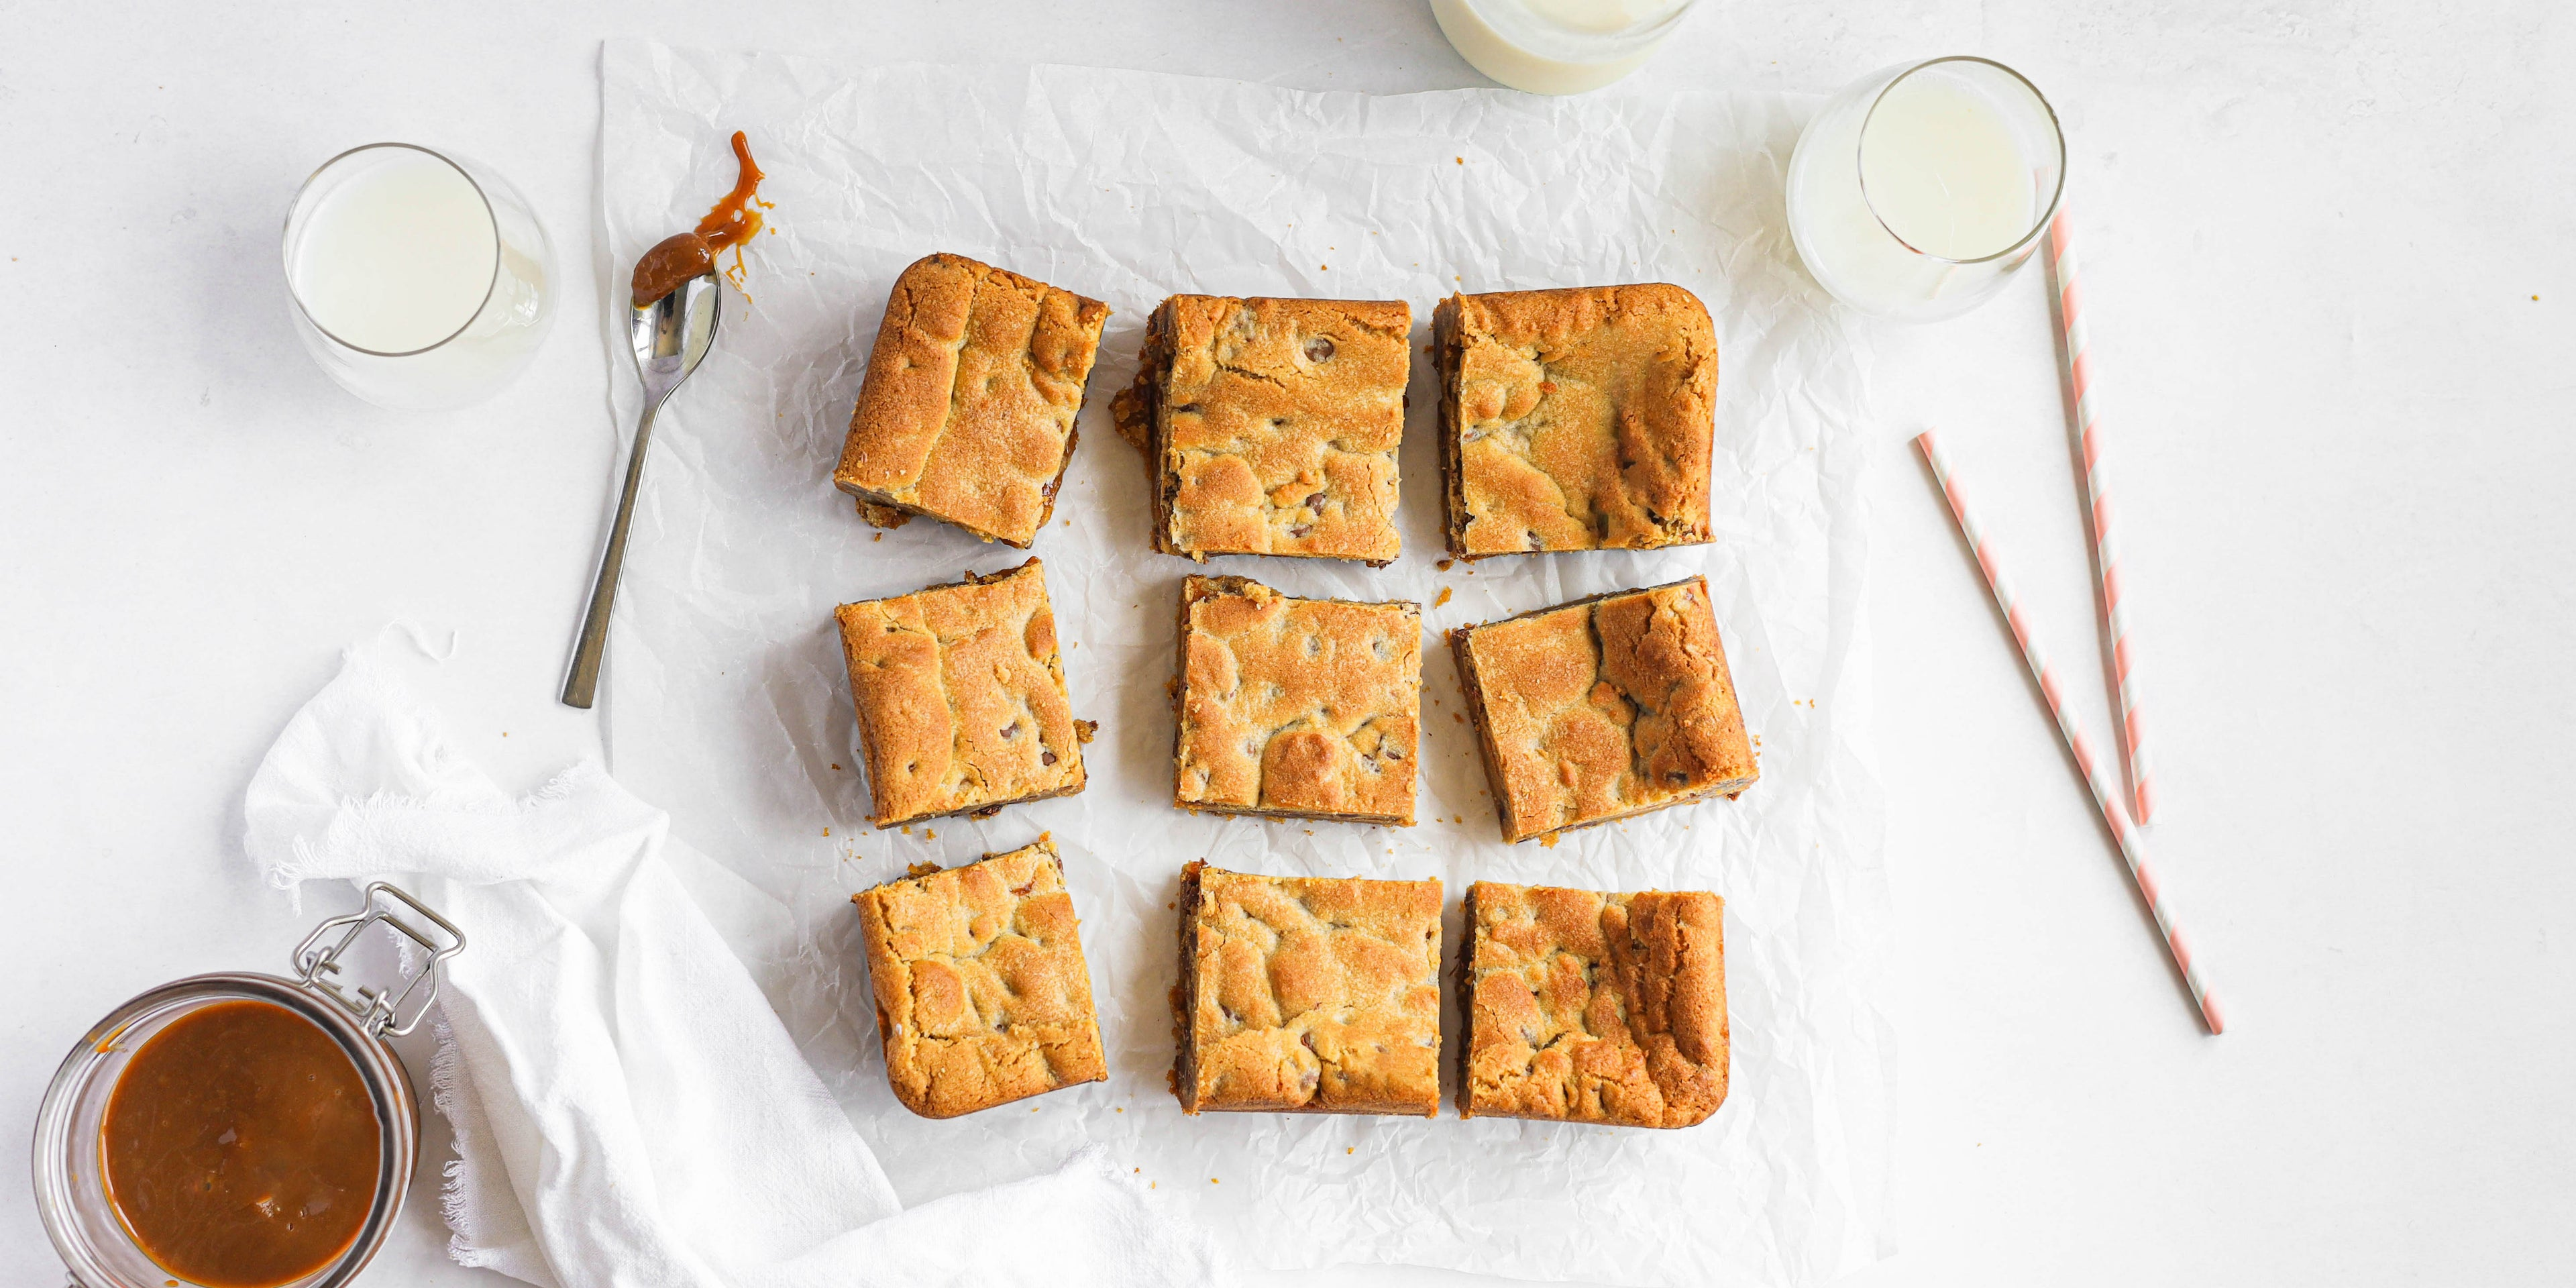 Salted Caramel Cookie Traybake cut into squares and lay on baking paper, next to a spoon with caramel sauce and glasses of milk